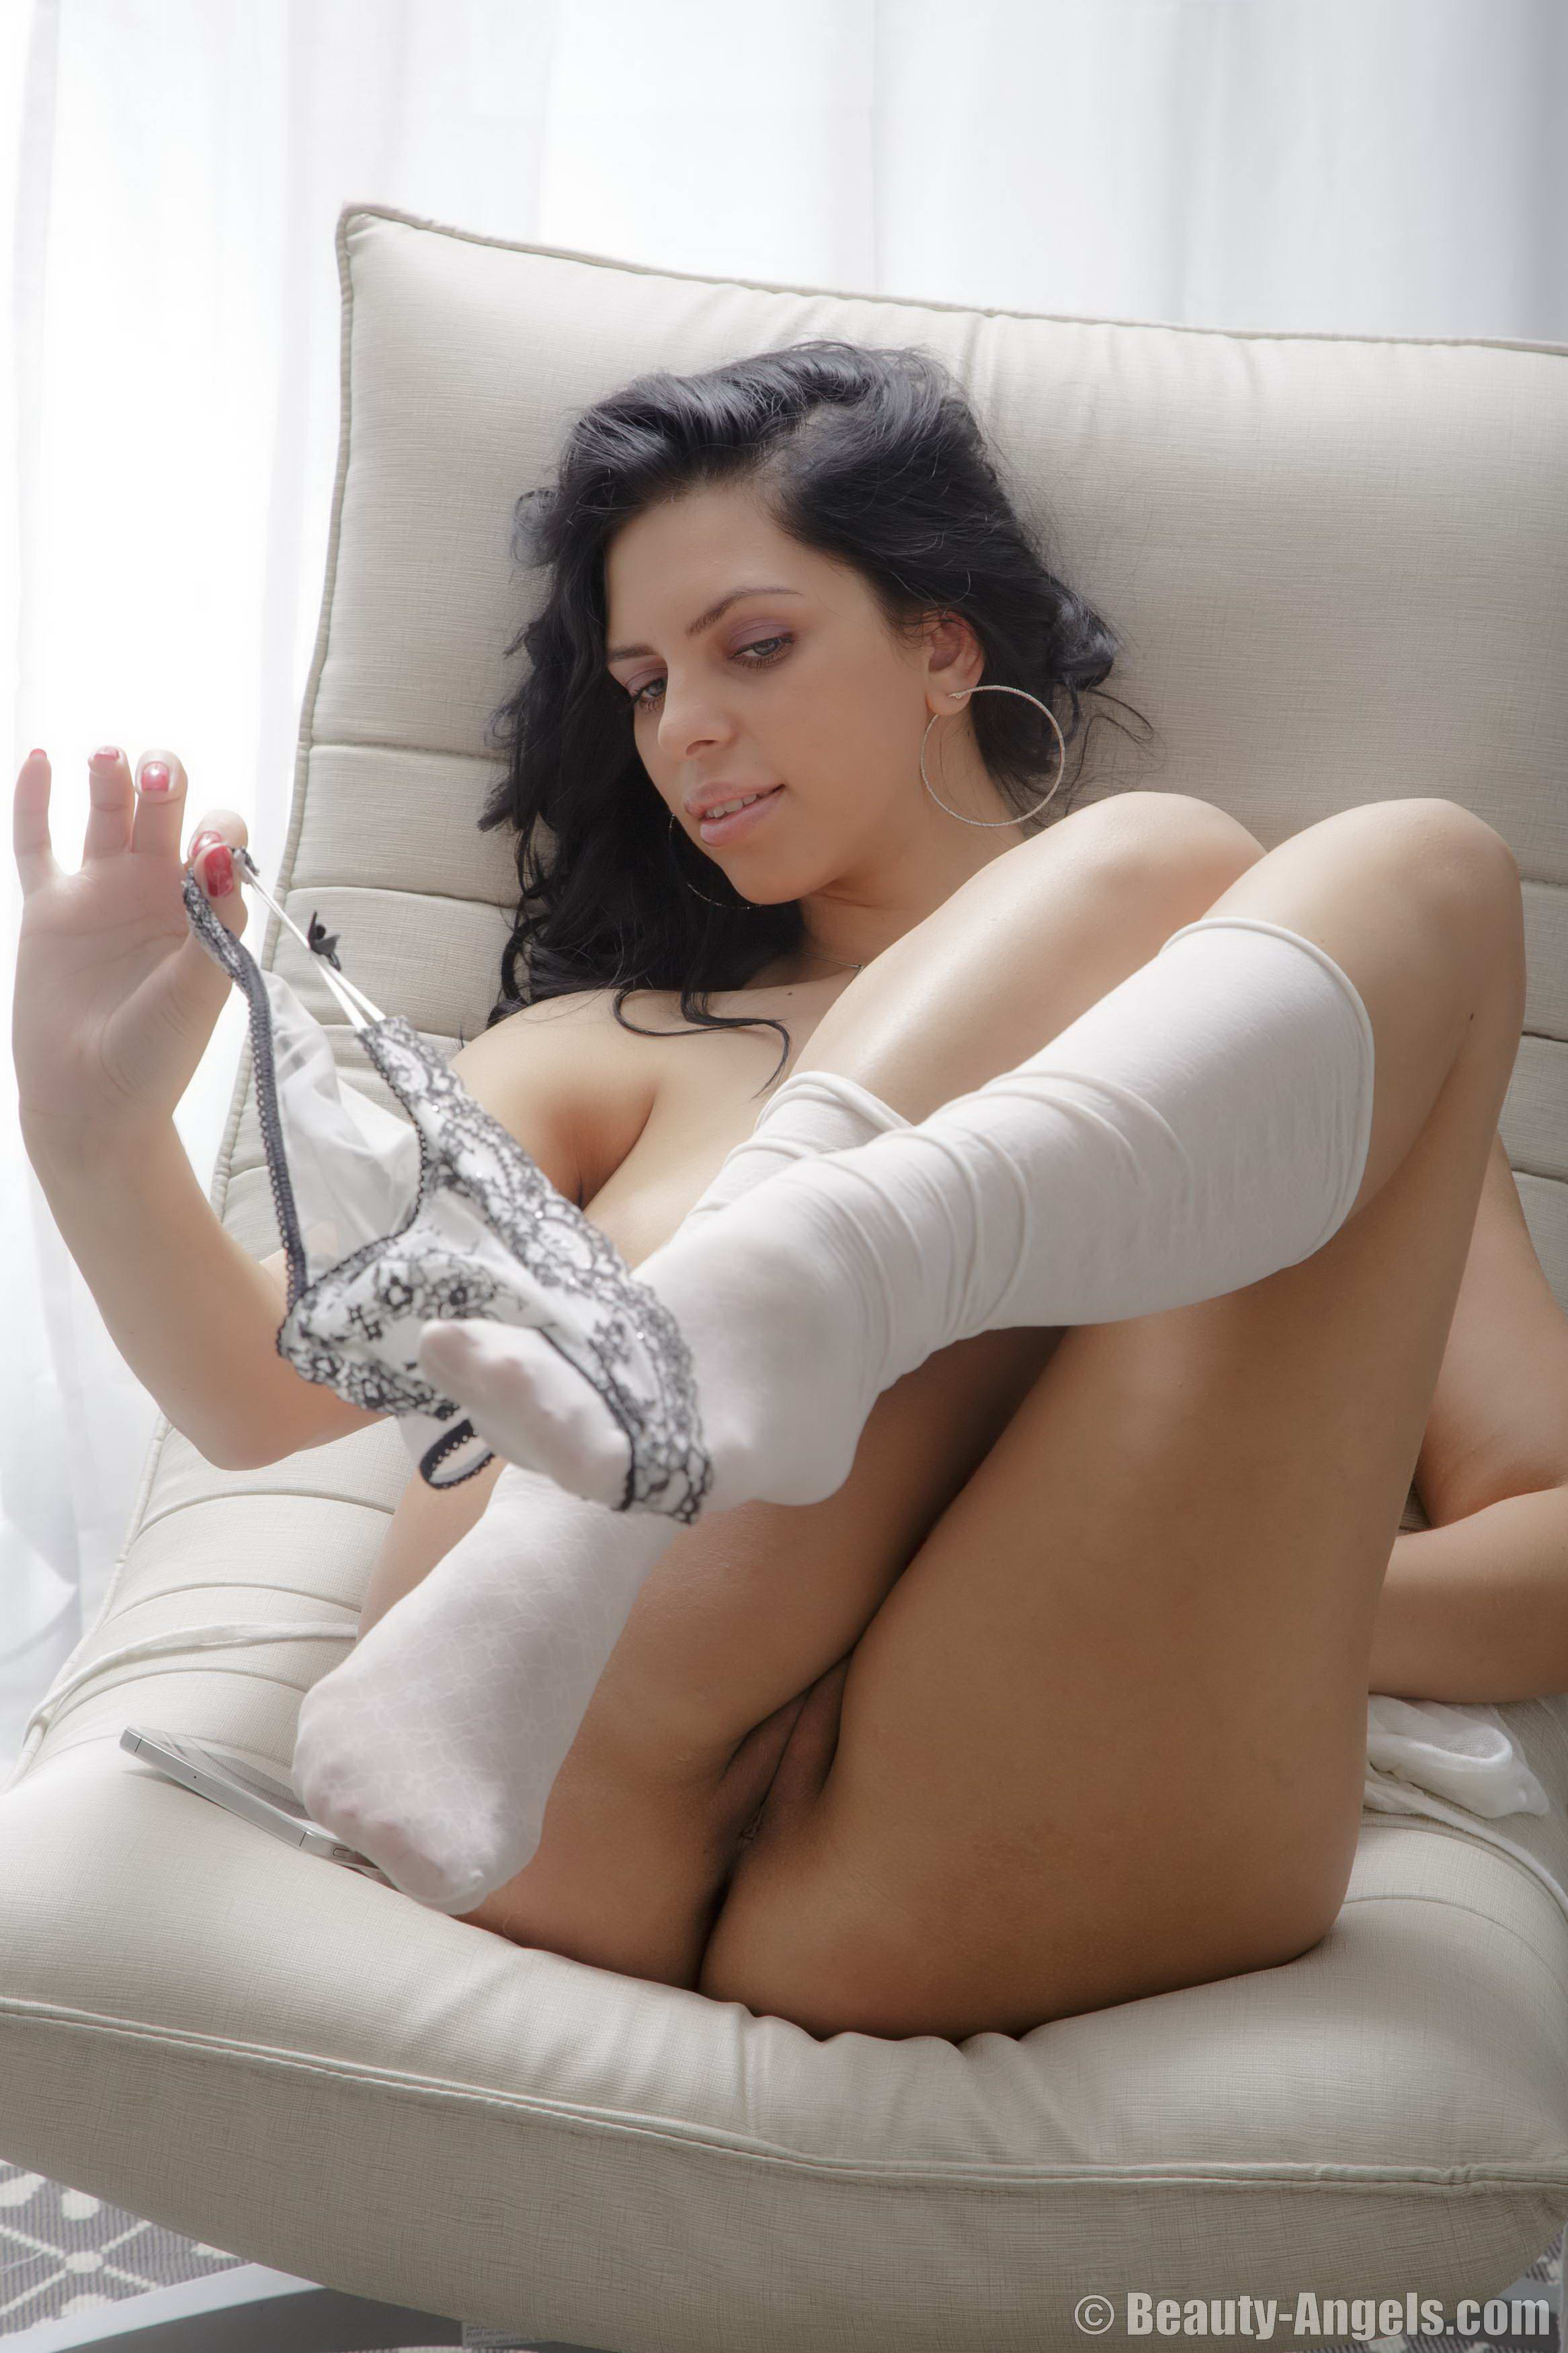 Horny girl using vibrator and cuming 3